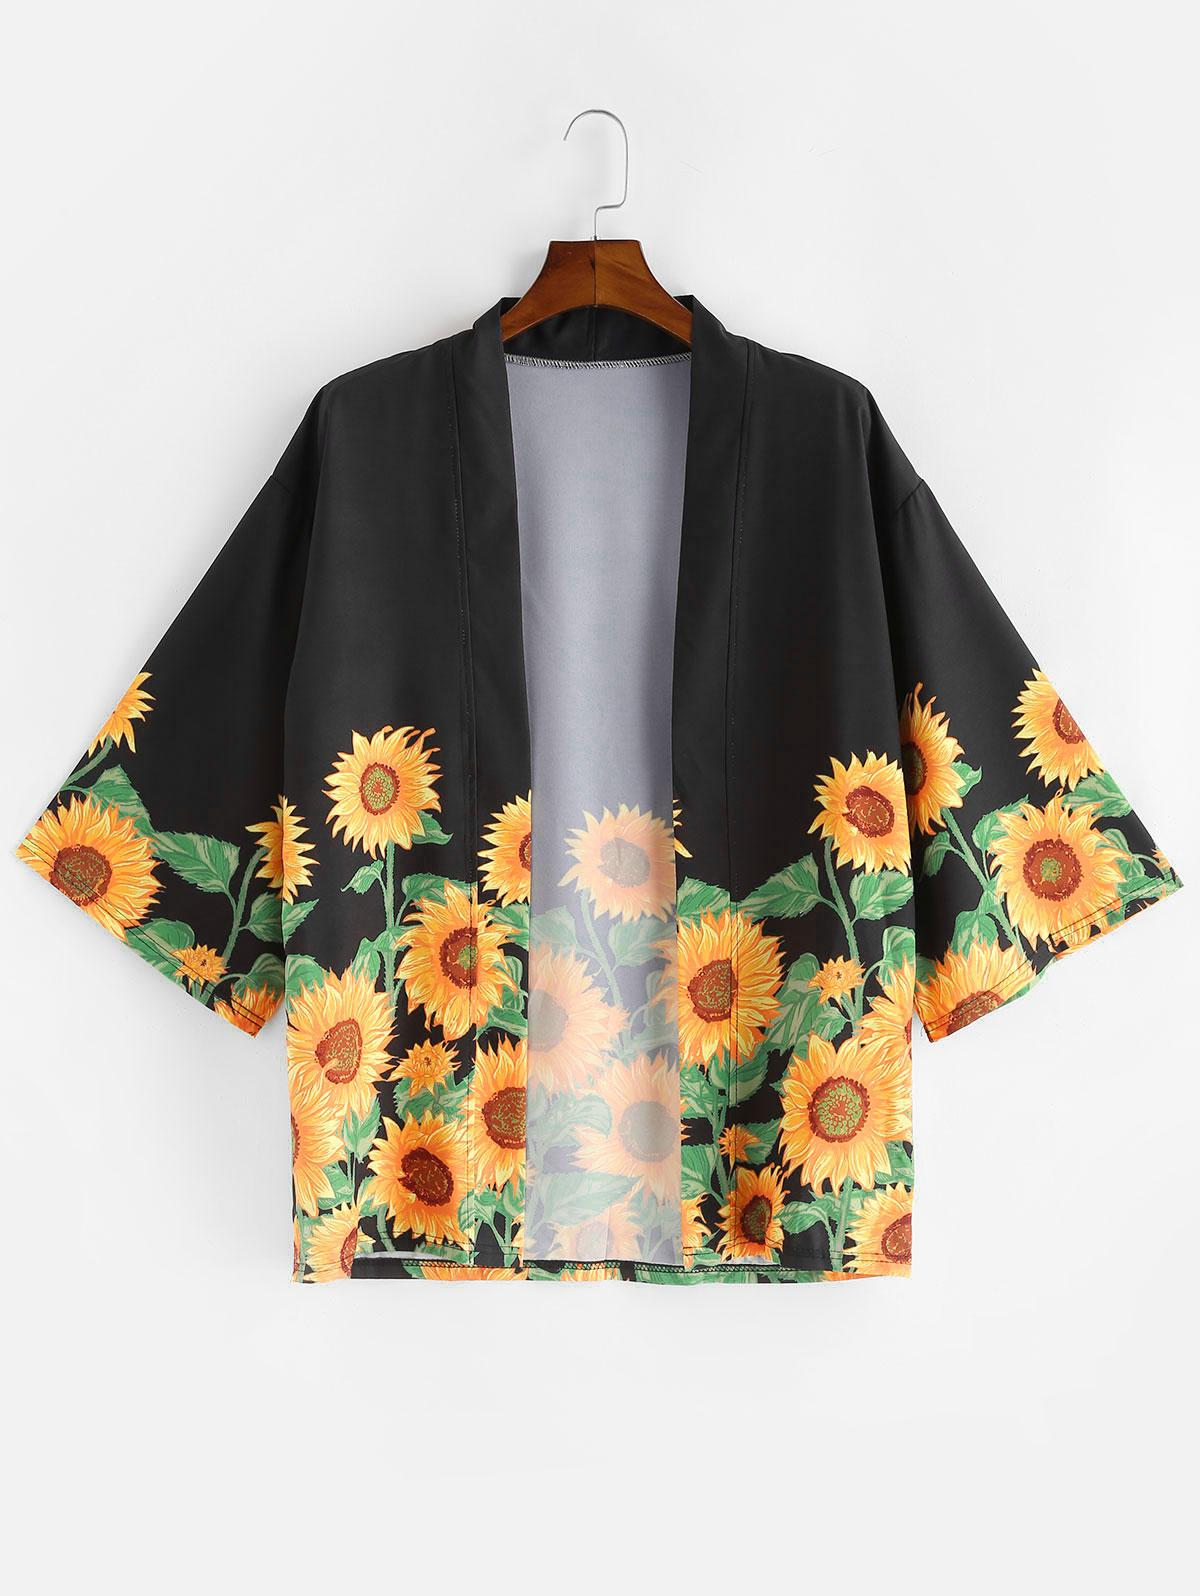 Sunflower Print Beach Vacation Kimono Cardigan